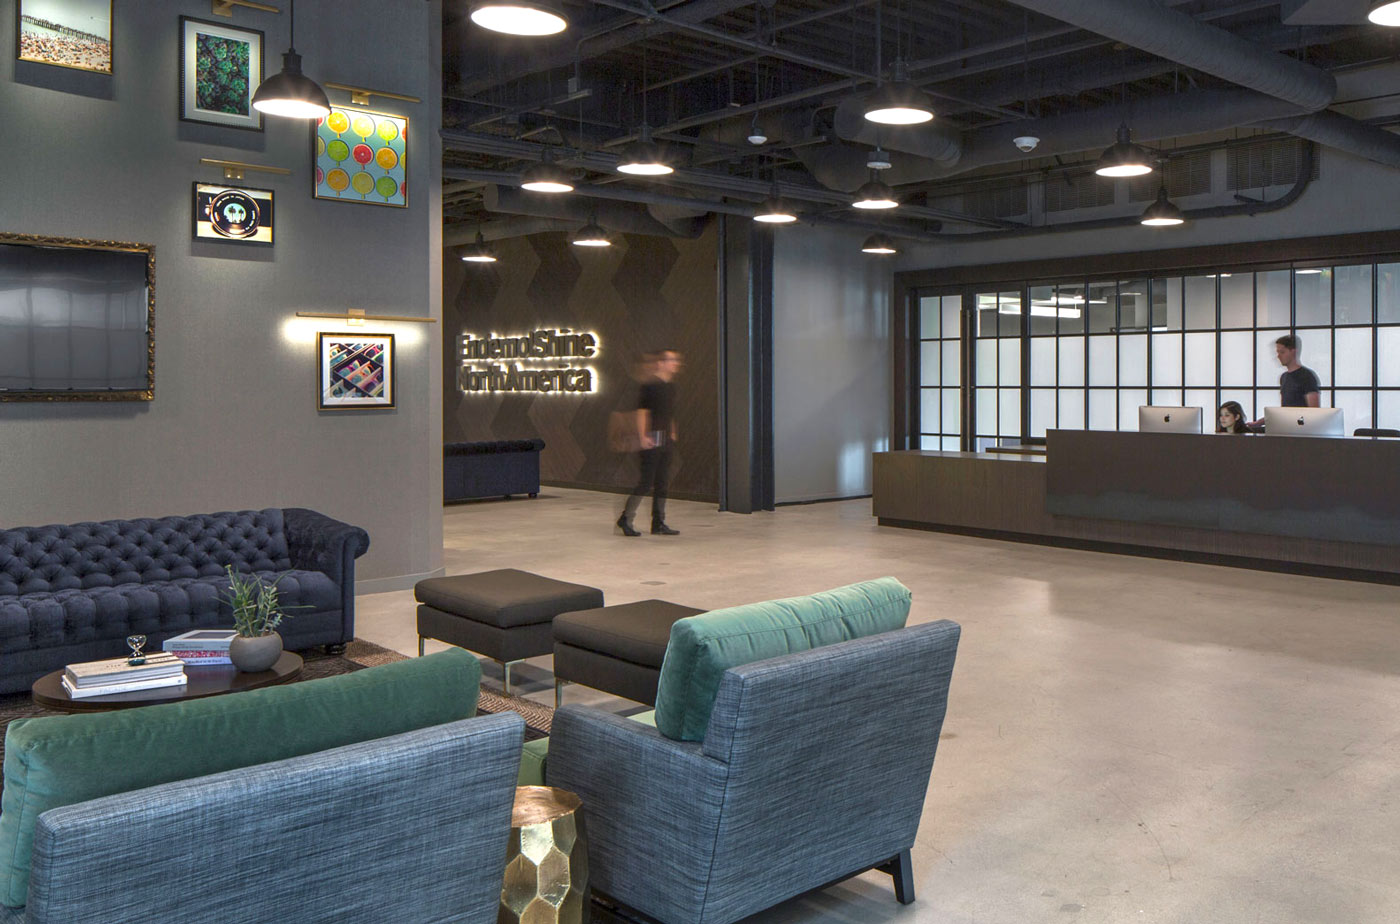 Recimercial office design for Endemol Shine North America